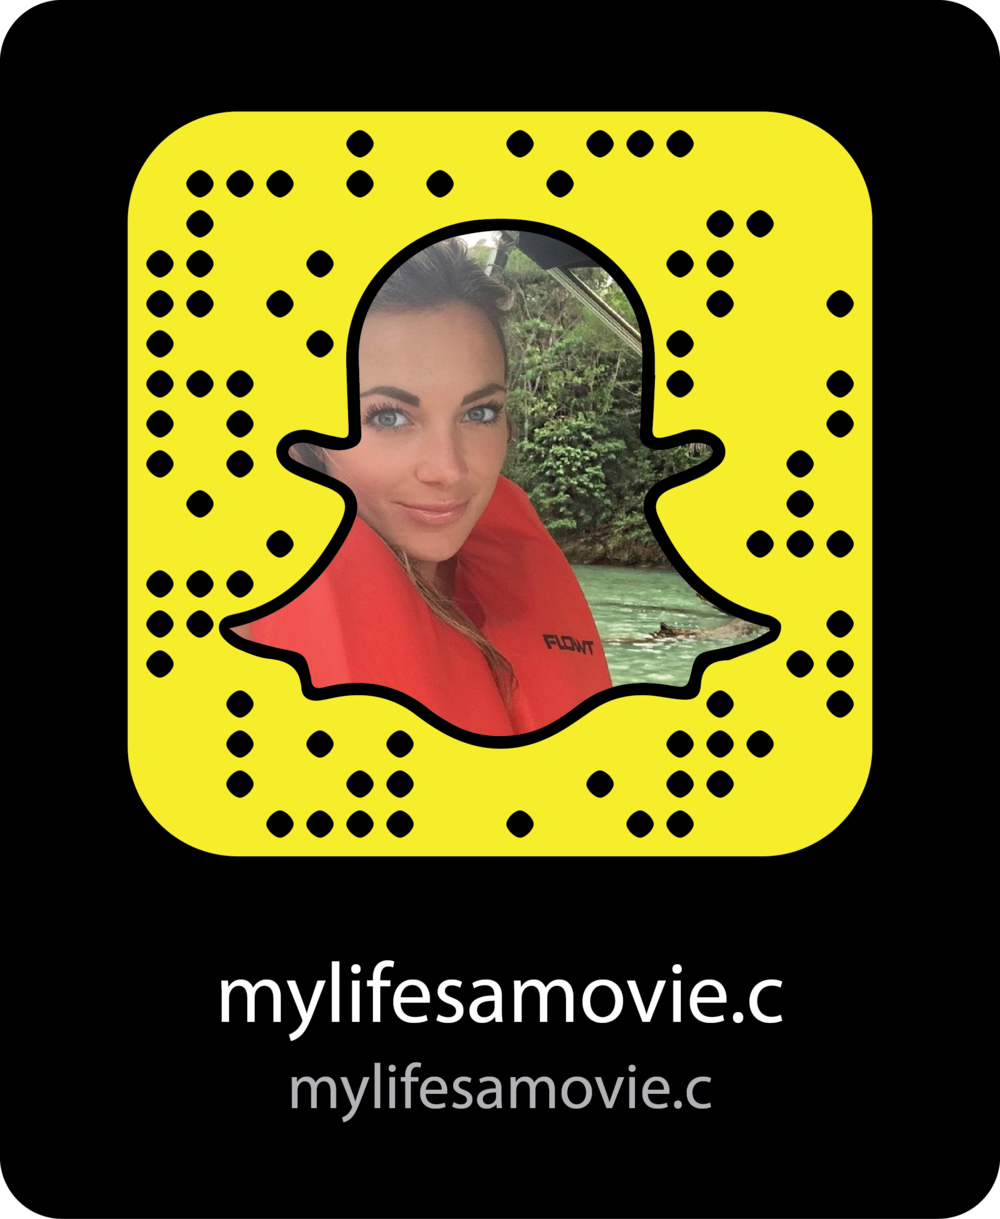 MyLifesAMovie.c-Travel-snapchat-snapcode.png